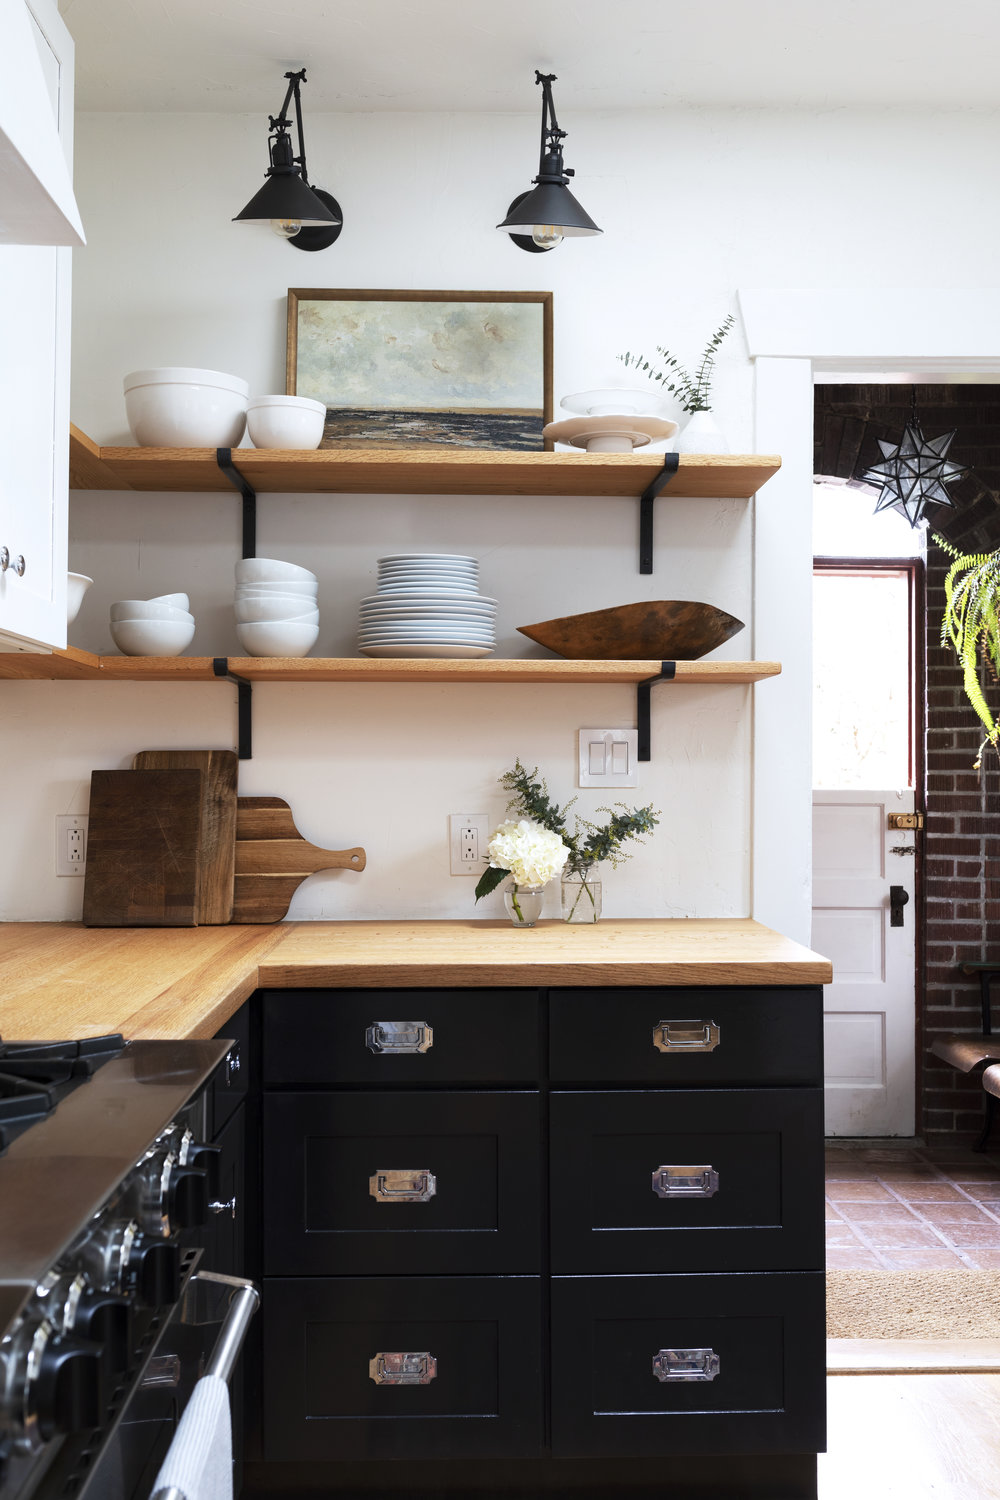 Oak shelves and black cabinets Dexter House Kitchen // the Grit and Polish